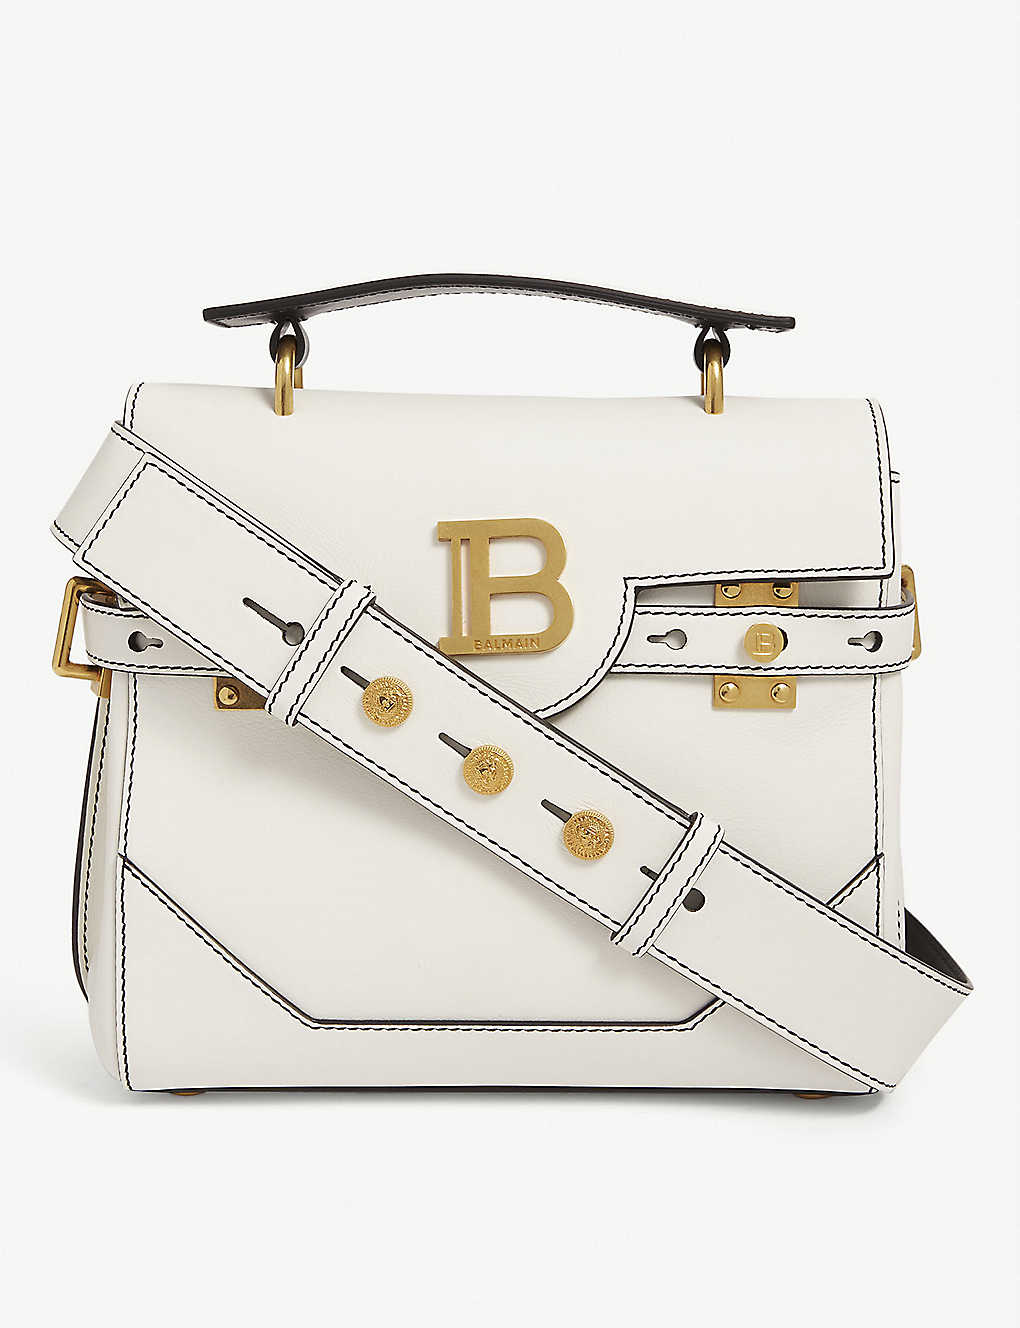 BALMAIN: B-Buzz 23 leather tote bag